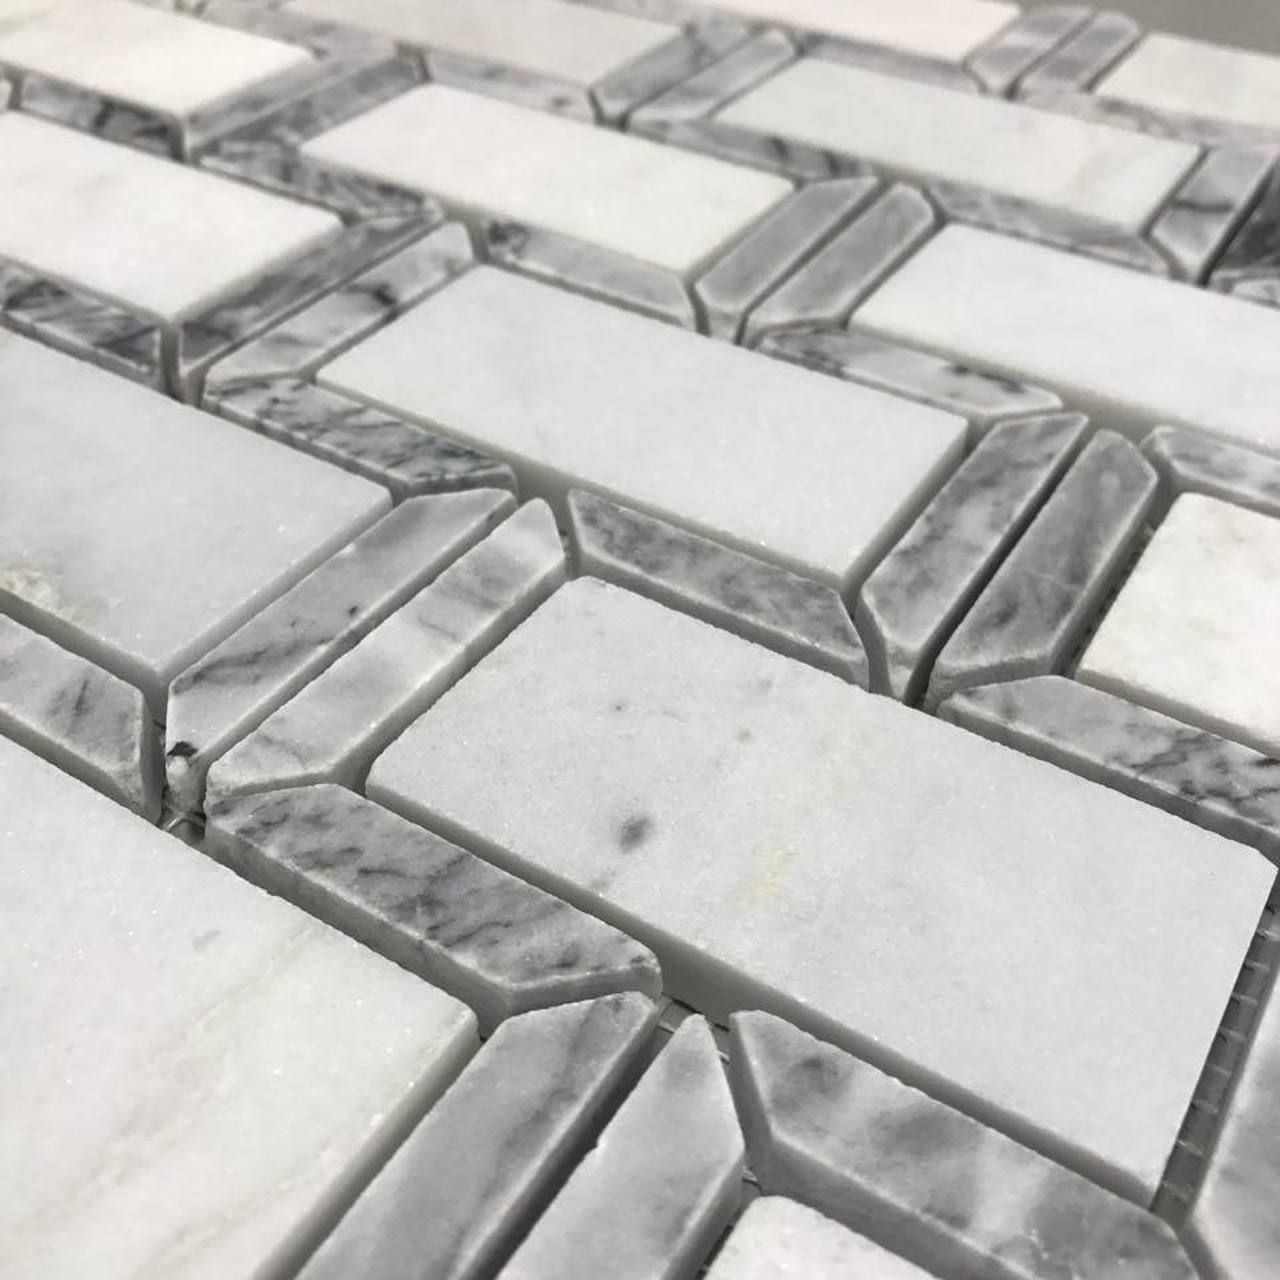 Carrara Marble W Gray Border Frame 2 X 4 Mosaic Tile On Sale 9 97 Per Square Foot With Images Carrara Marble Mosaic Tiles Carrara